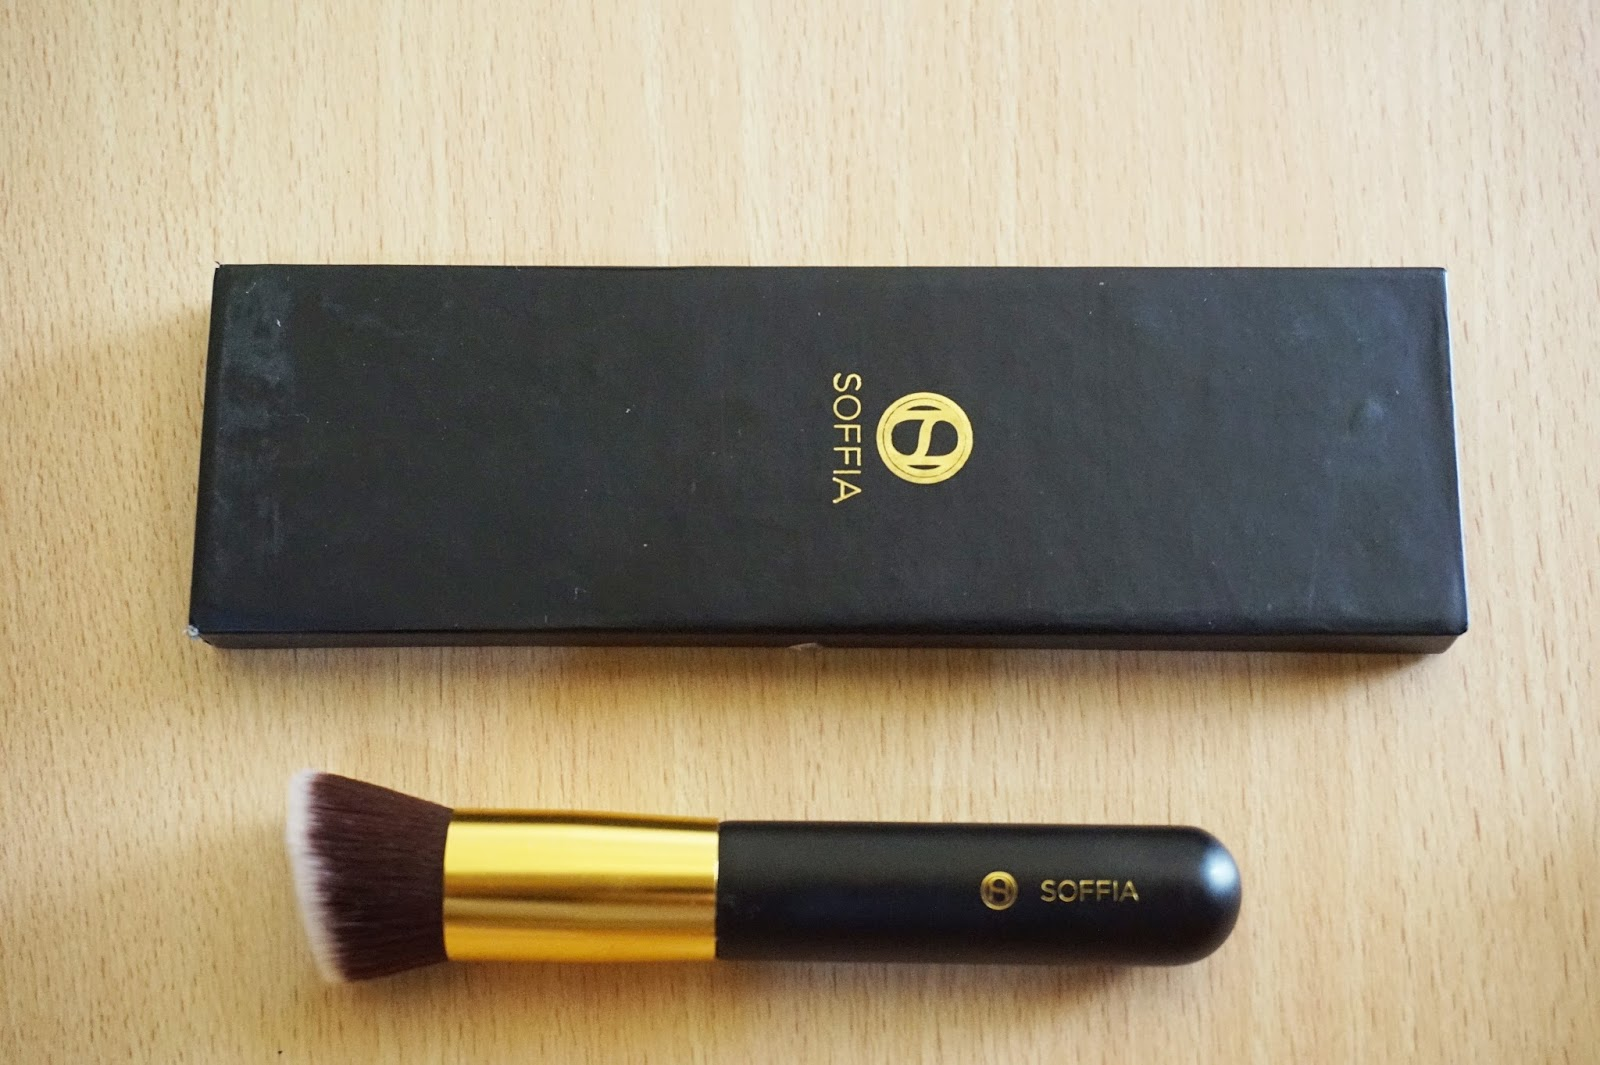 soffia opulence perfect skin foundation brush review